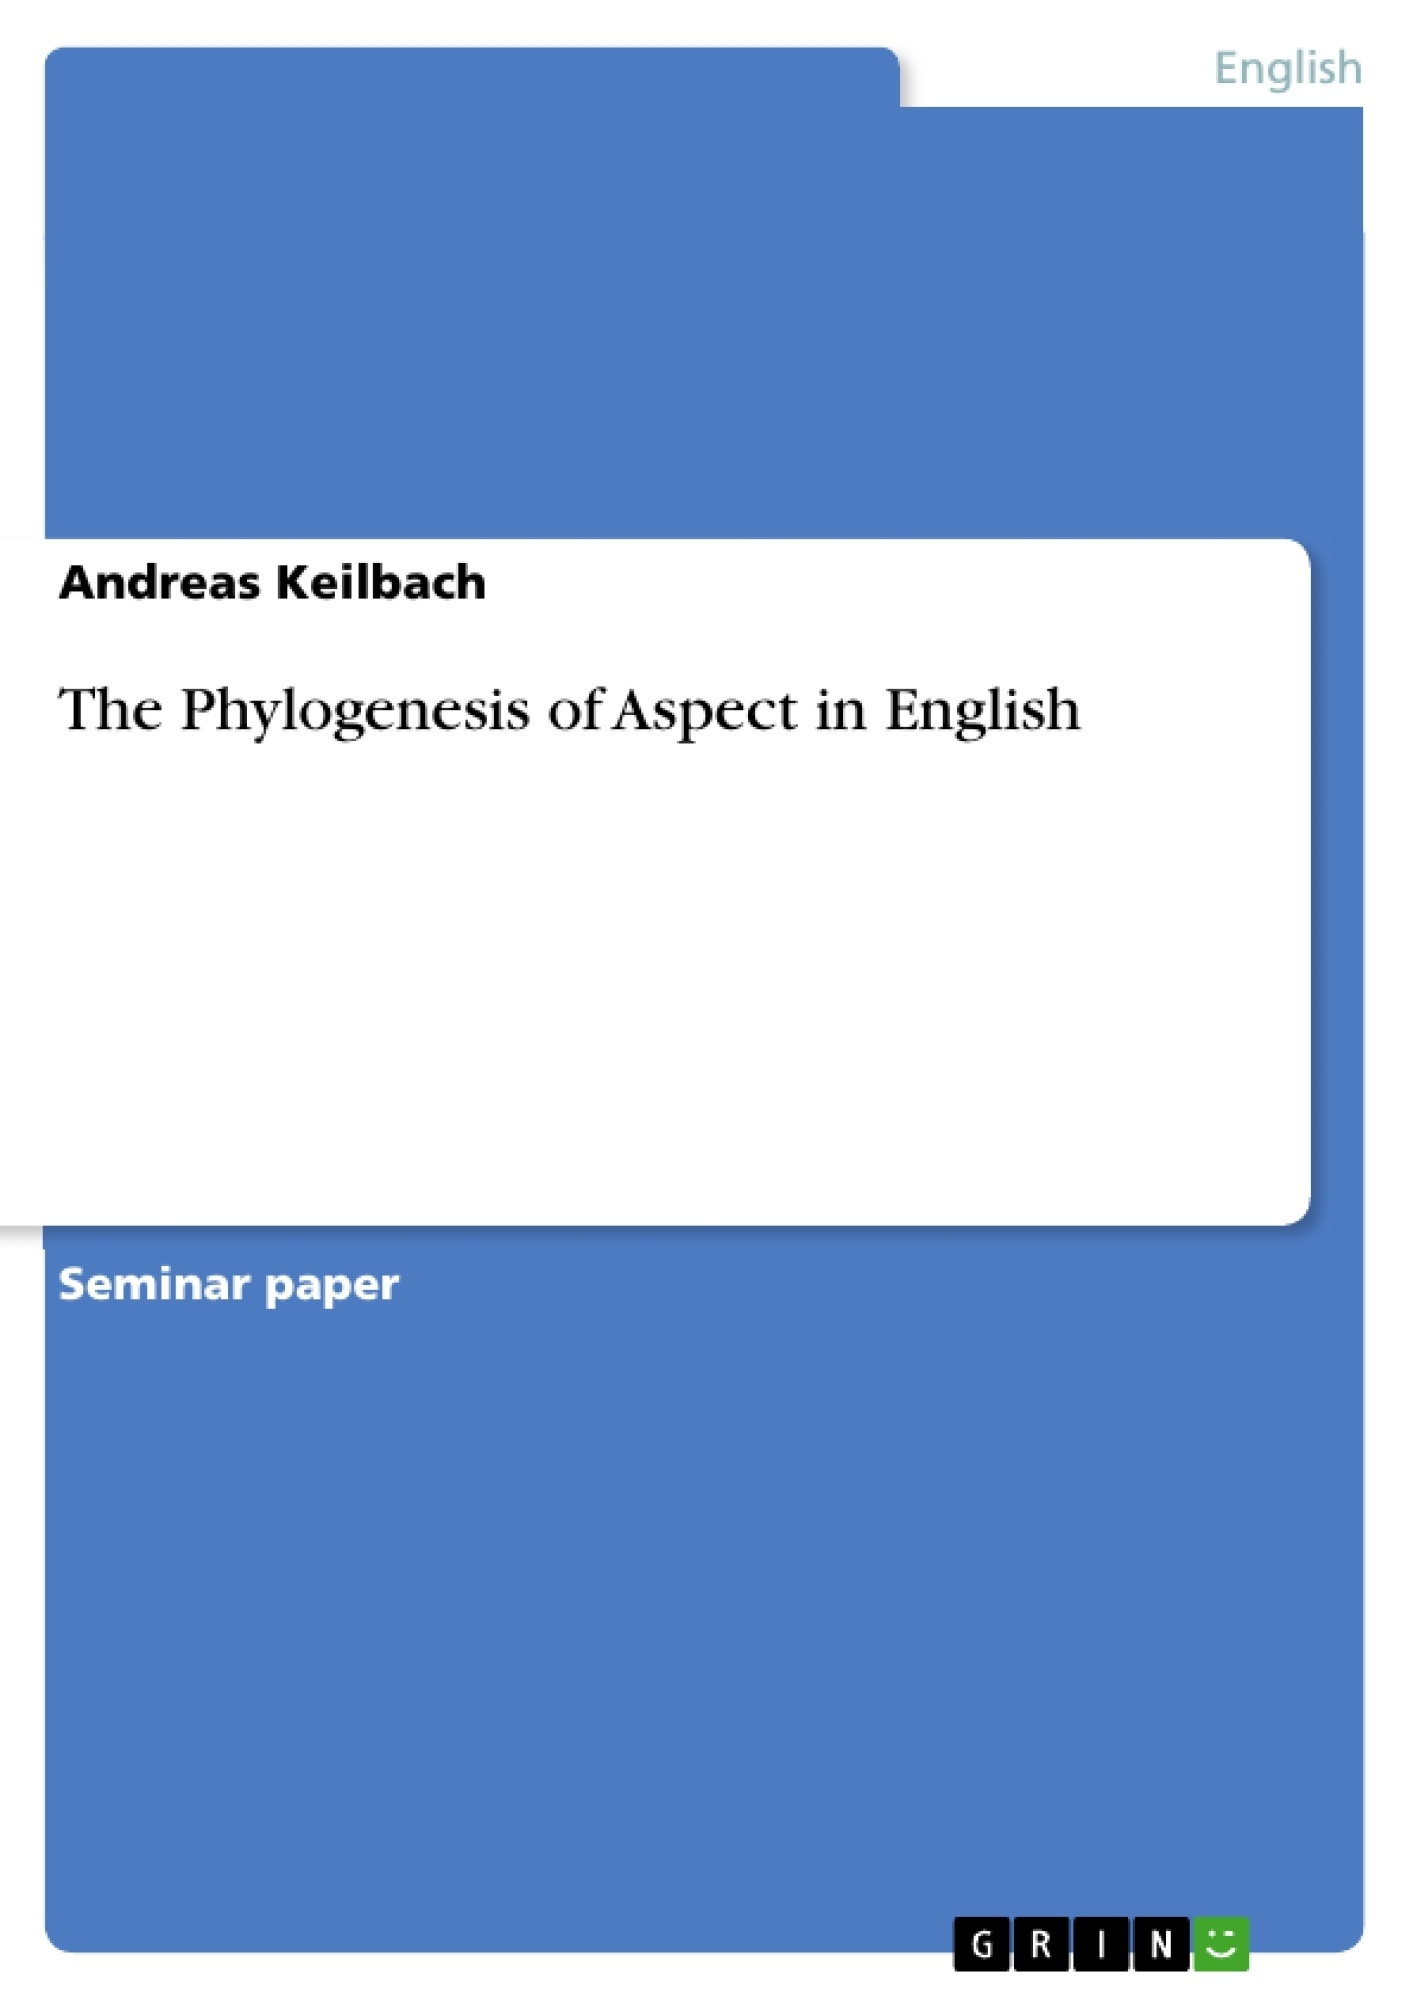 Title: The Phylogenesis of Aspect in English